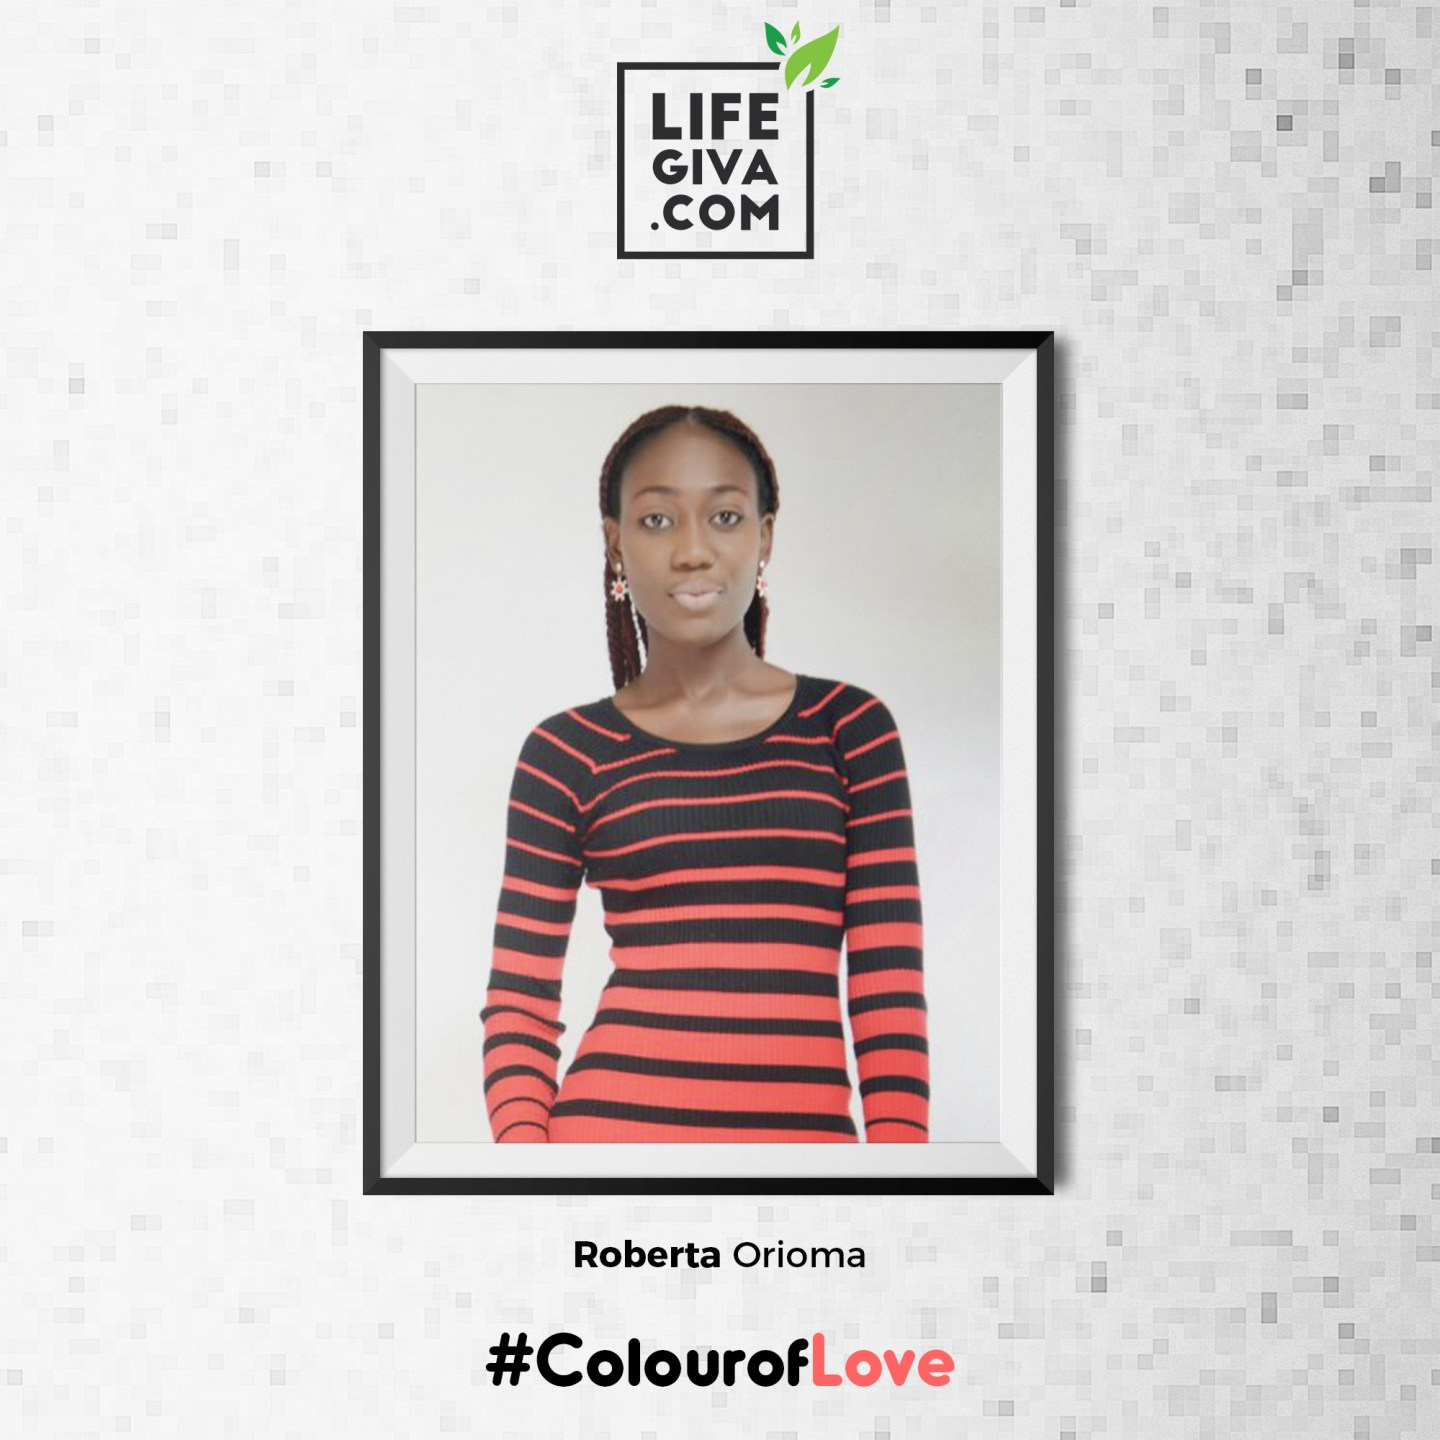 The Colour Of Love - Roberta Orioma #ColourOfLove